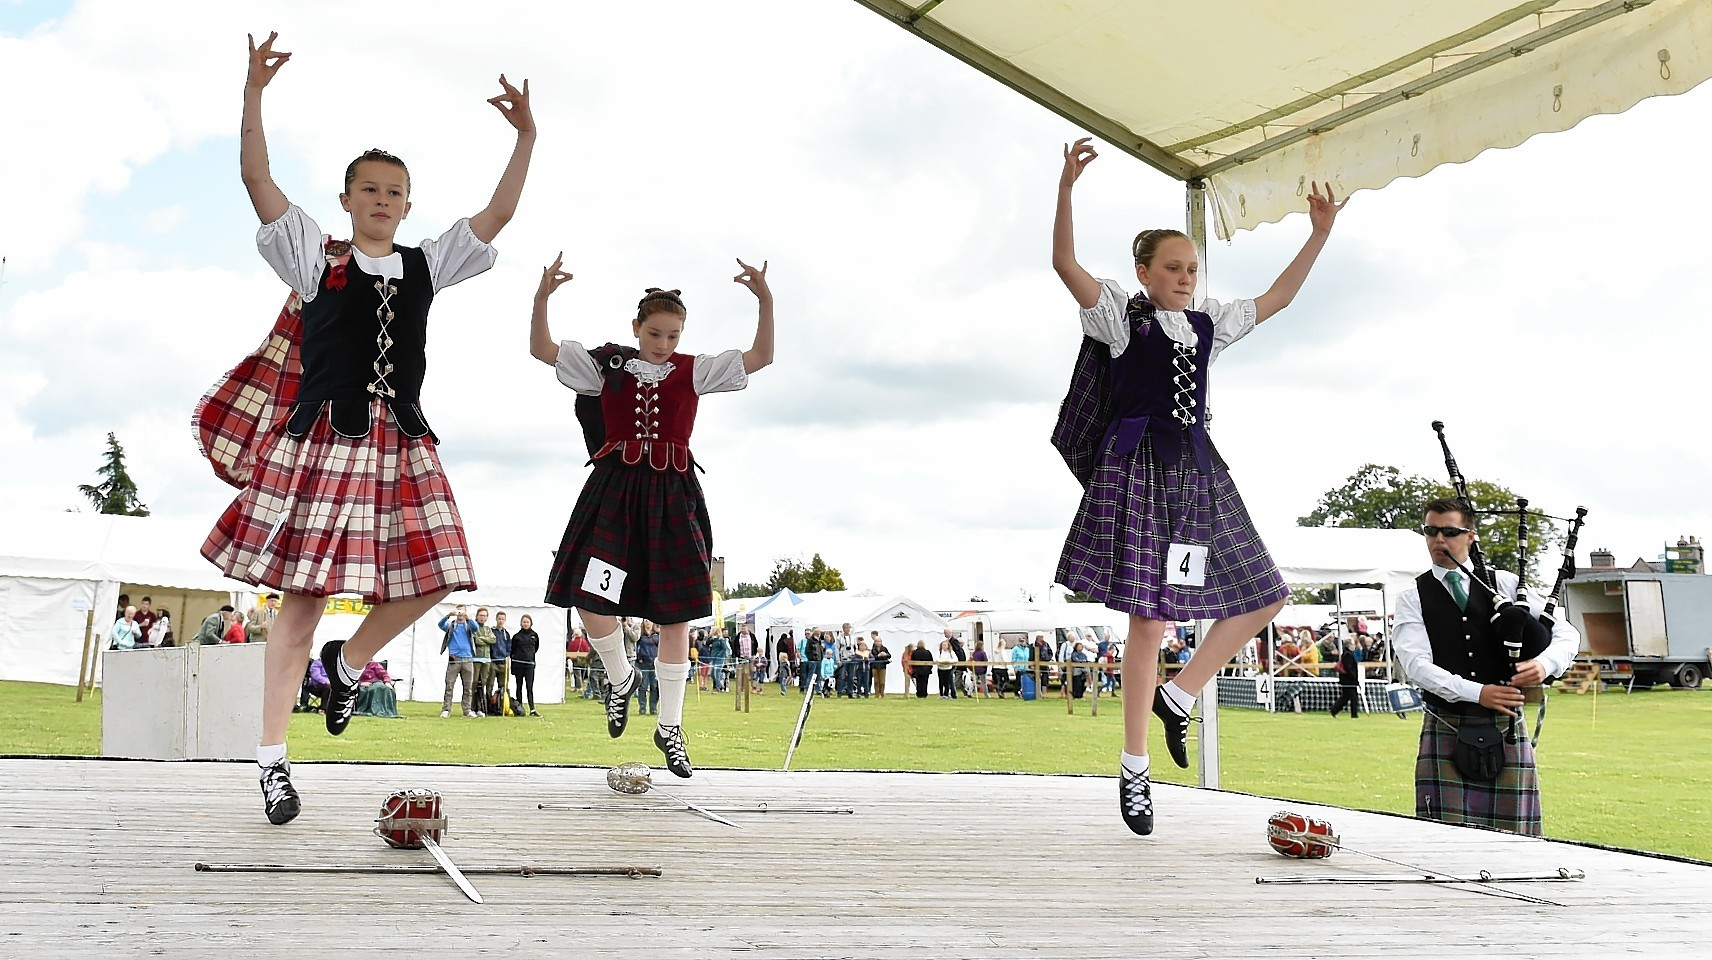 Aboyne Highland Games - Dancers compete. Picture by COLIN RENNIE